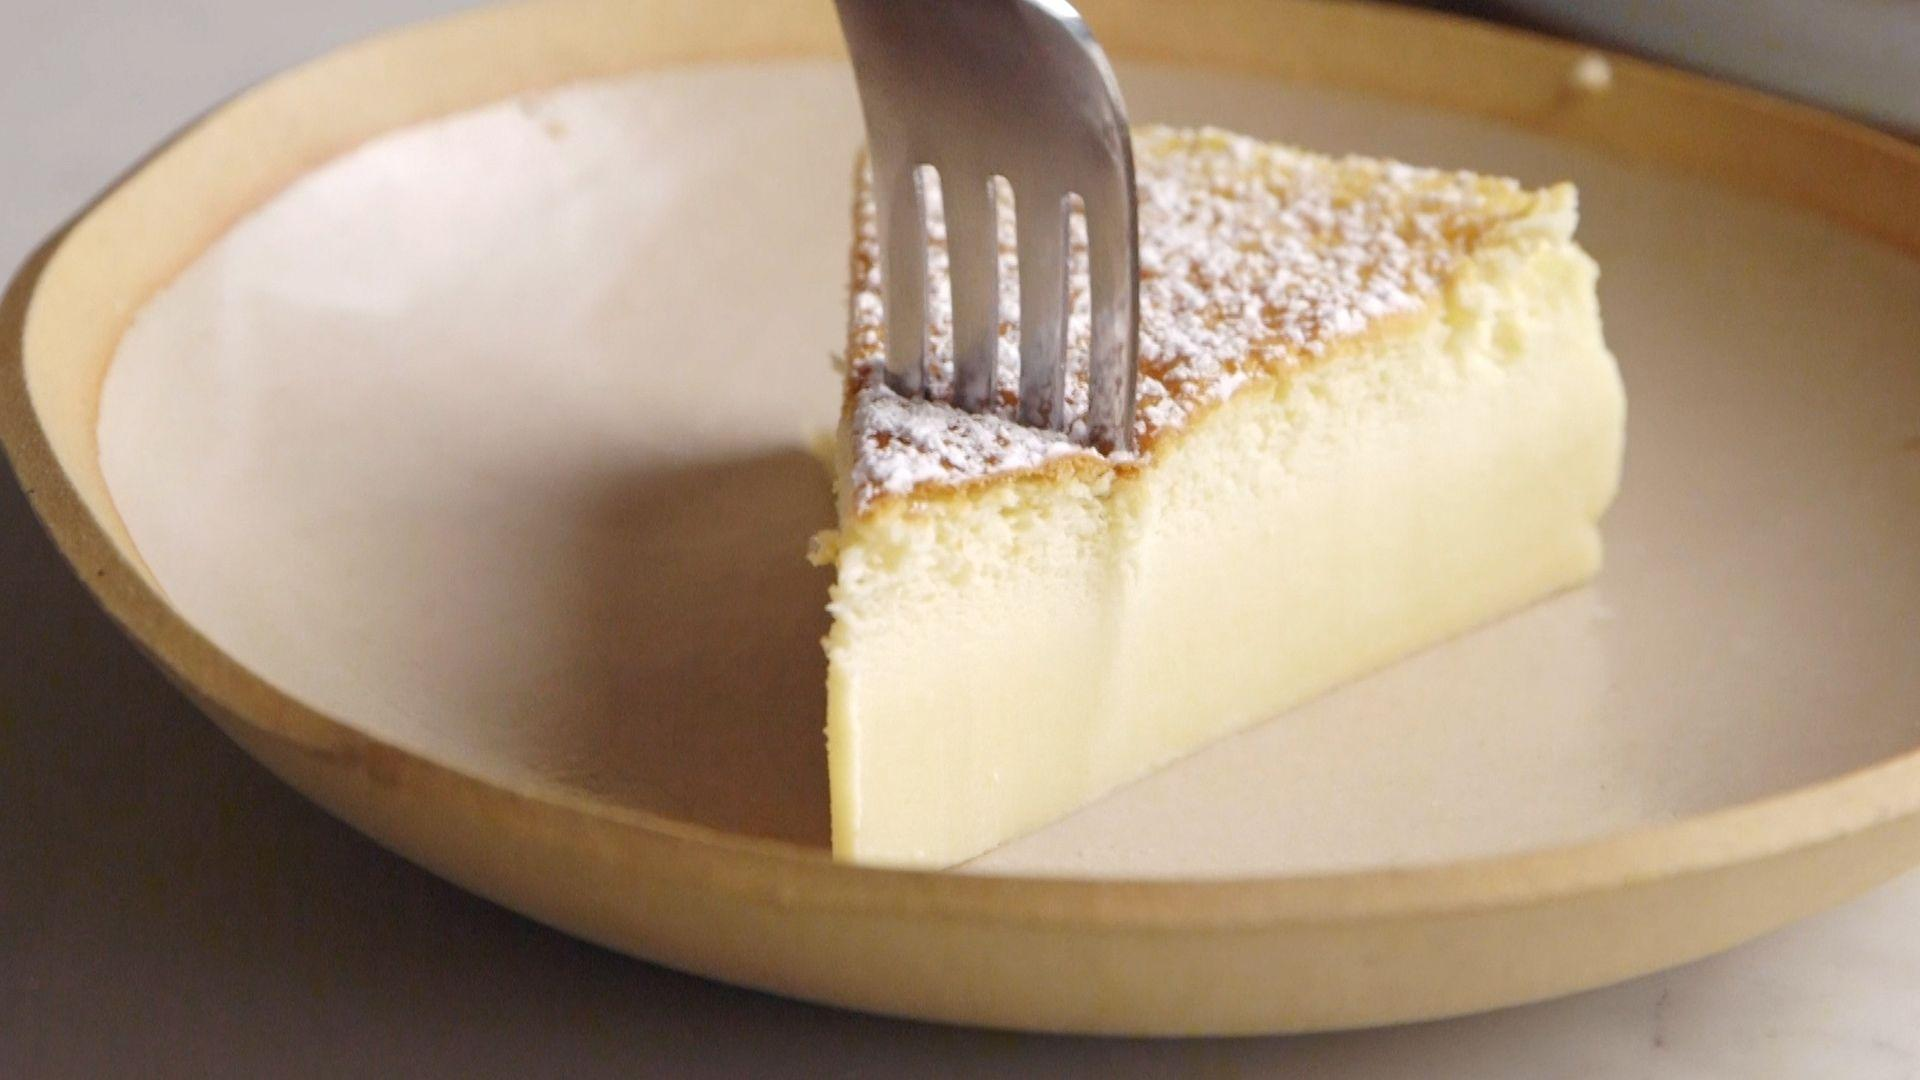 There's A Reason This Easy Cheesecake Recipe Is Going Viral | HuffPost Life